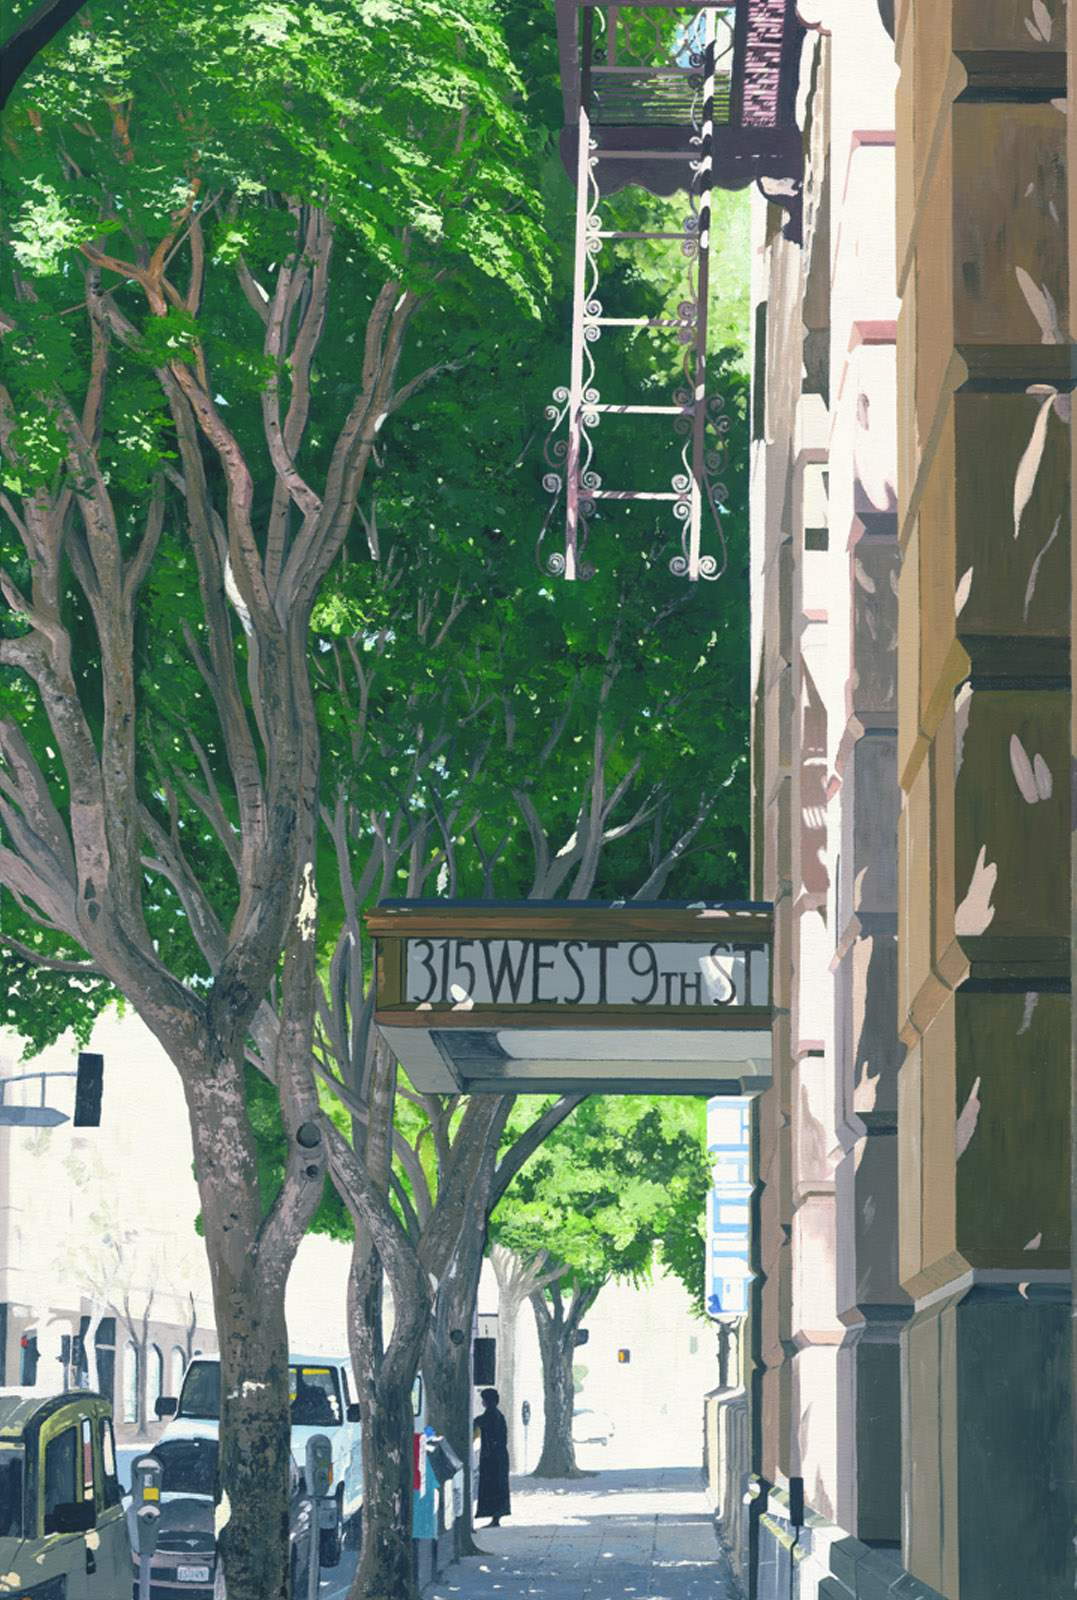 "315 W. 9th street - acrylic on canvas 36"" x 24"""